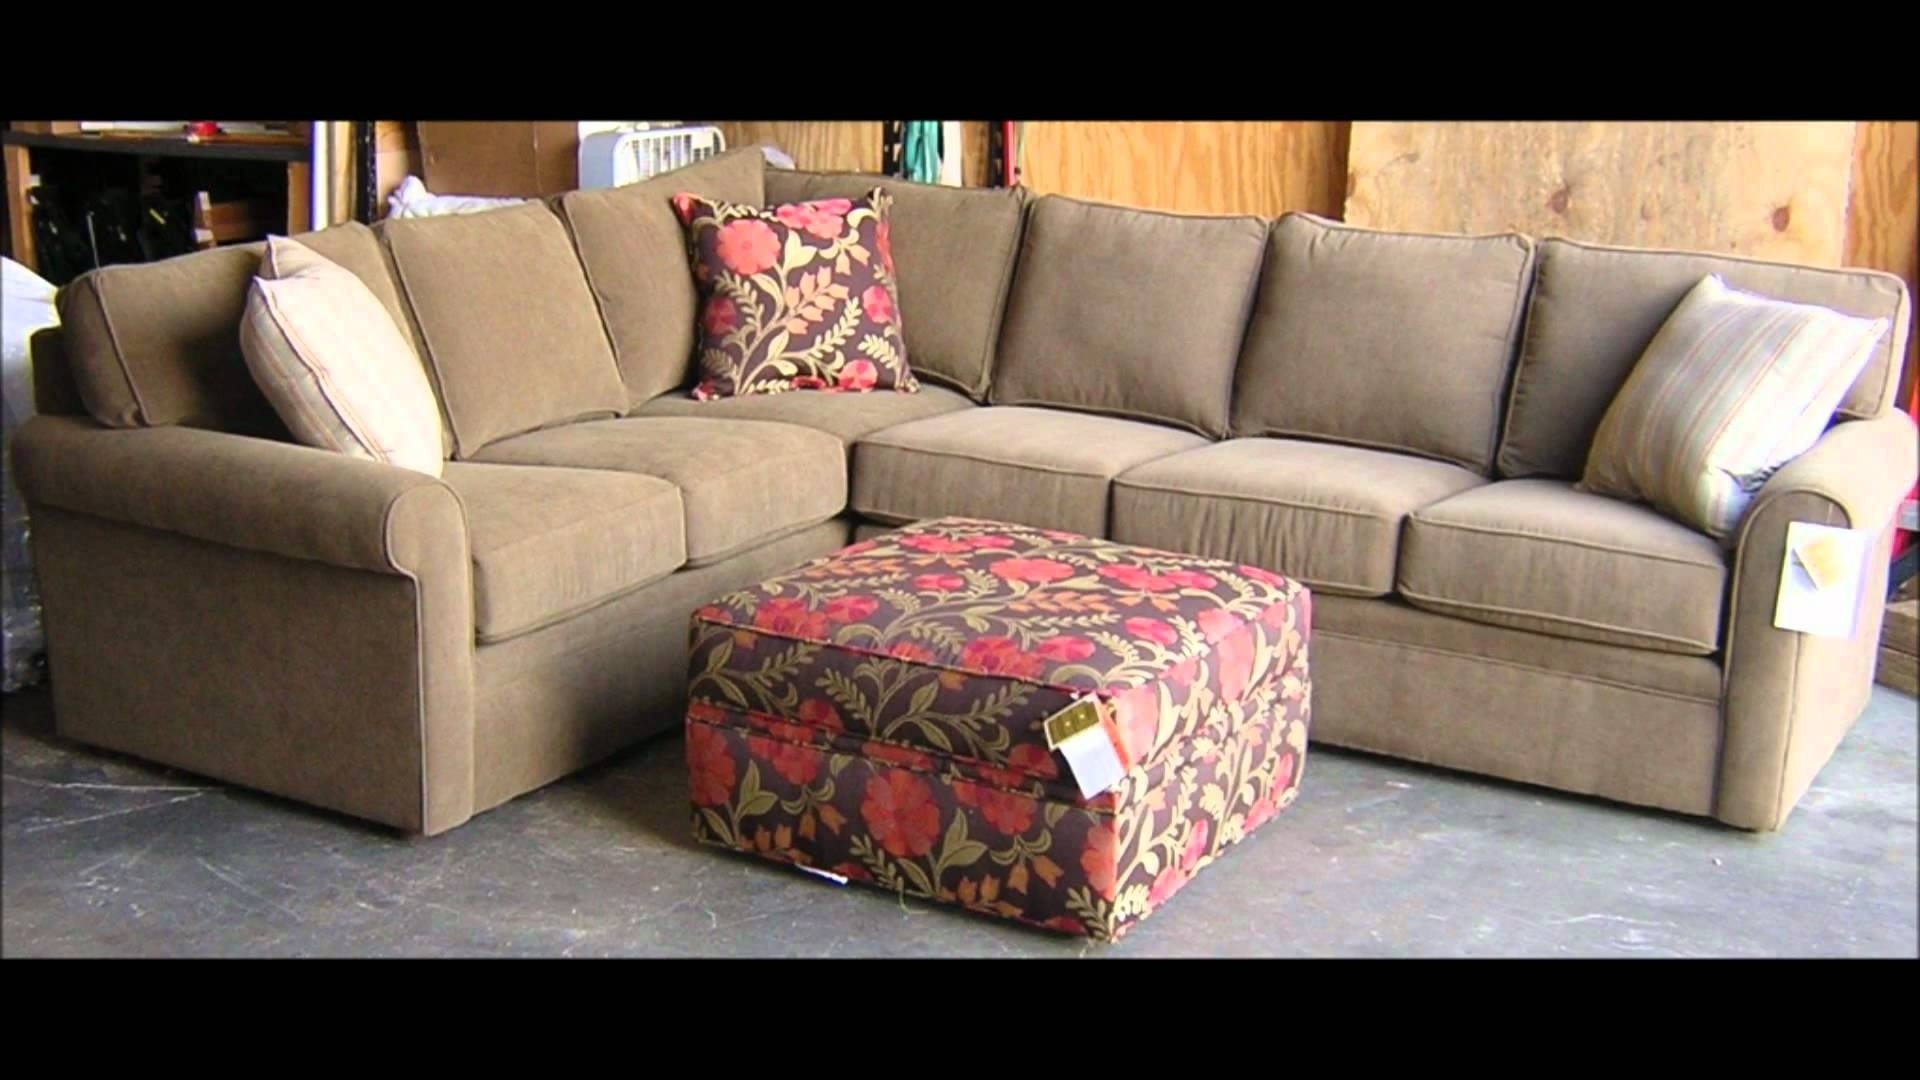 Furniture: Leather Furniture Hickory Nc | King Hickory Sofa Prices In Hickory Nc Sectional Sofas (Image 5 of 10)